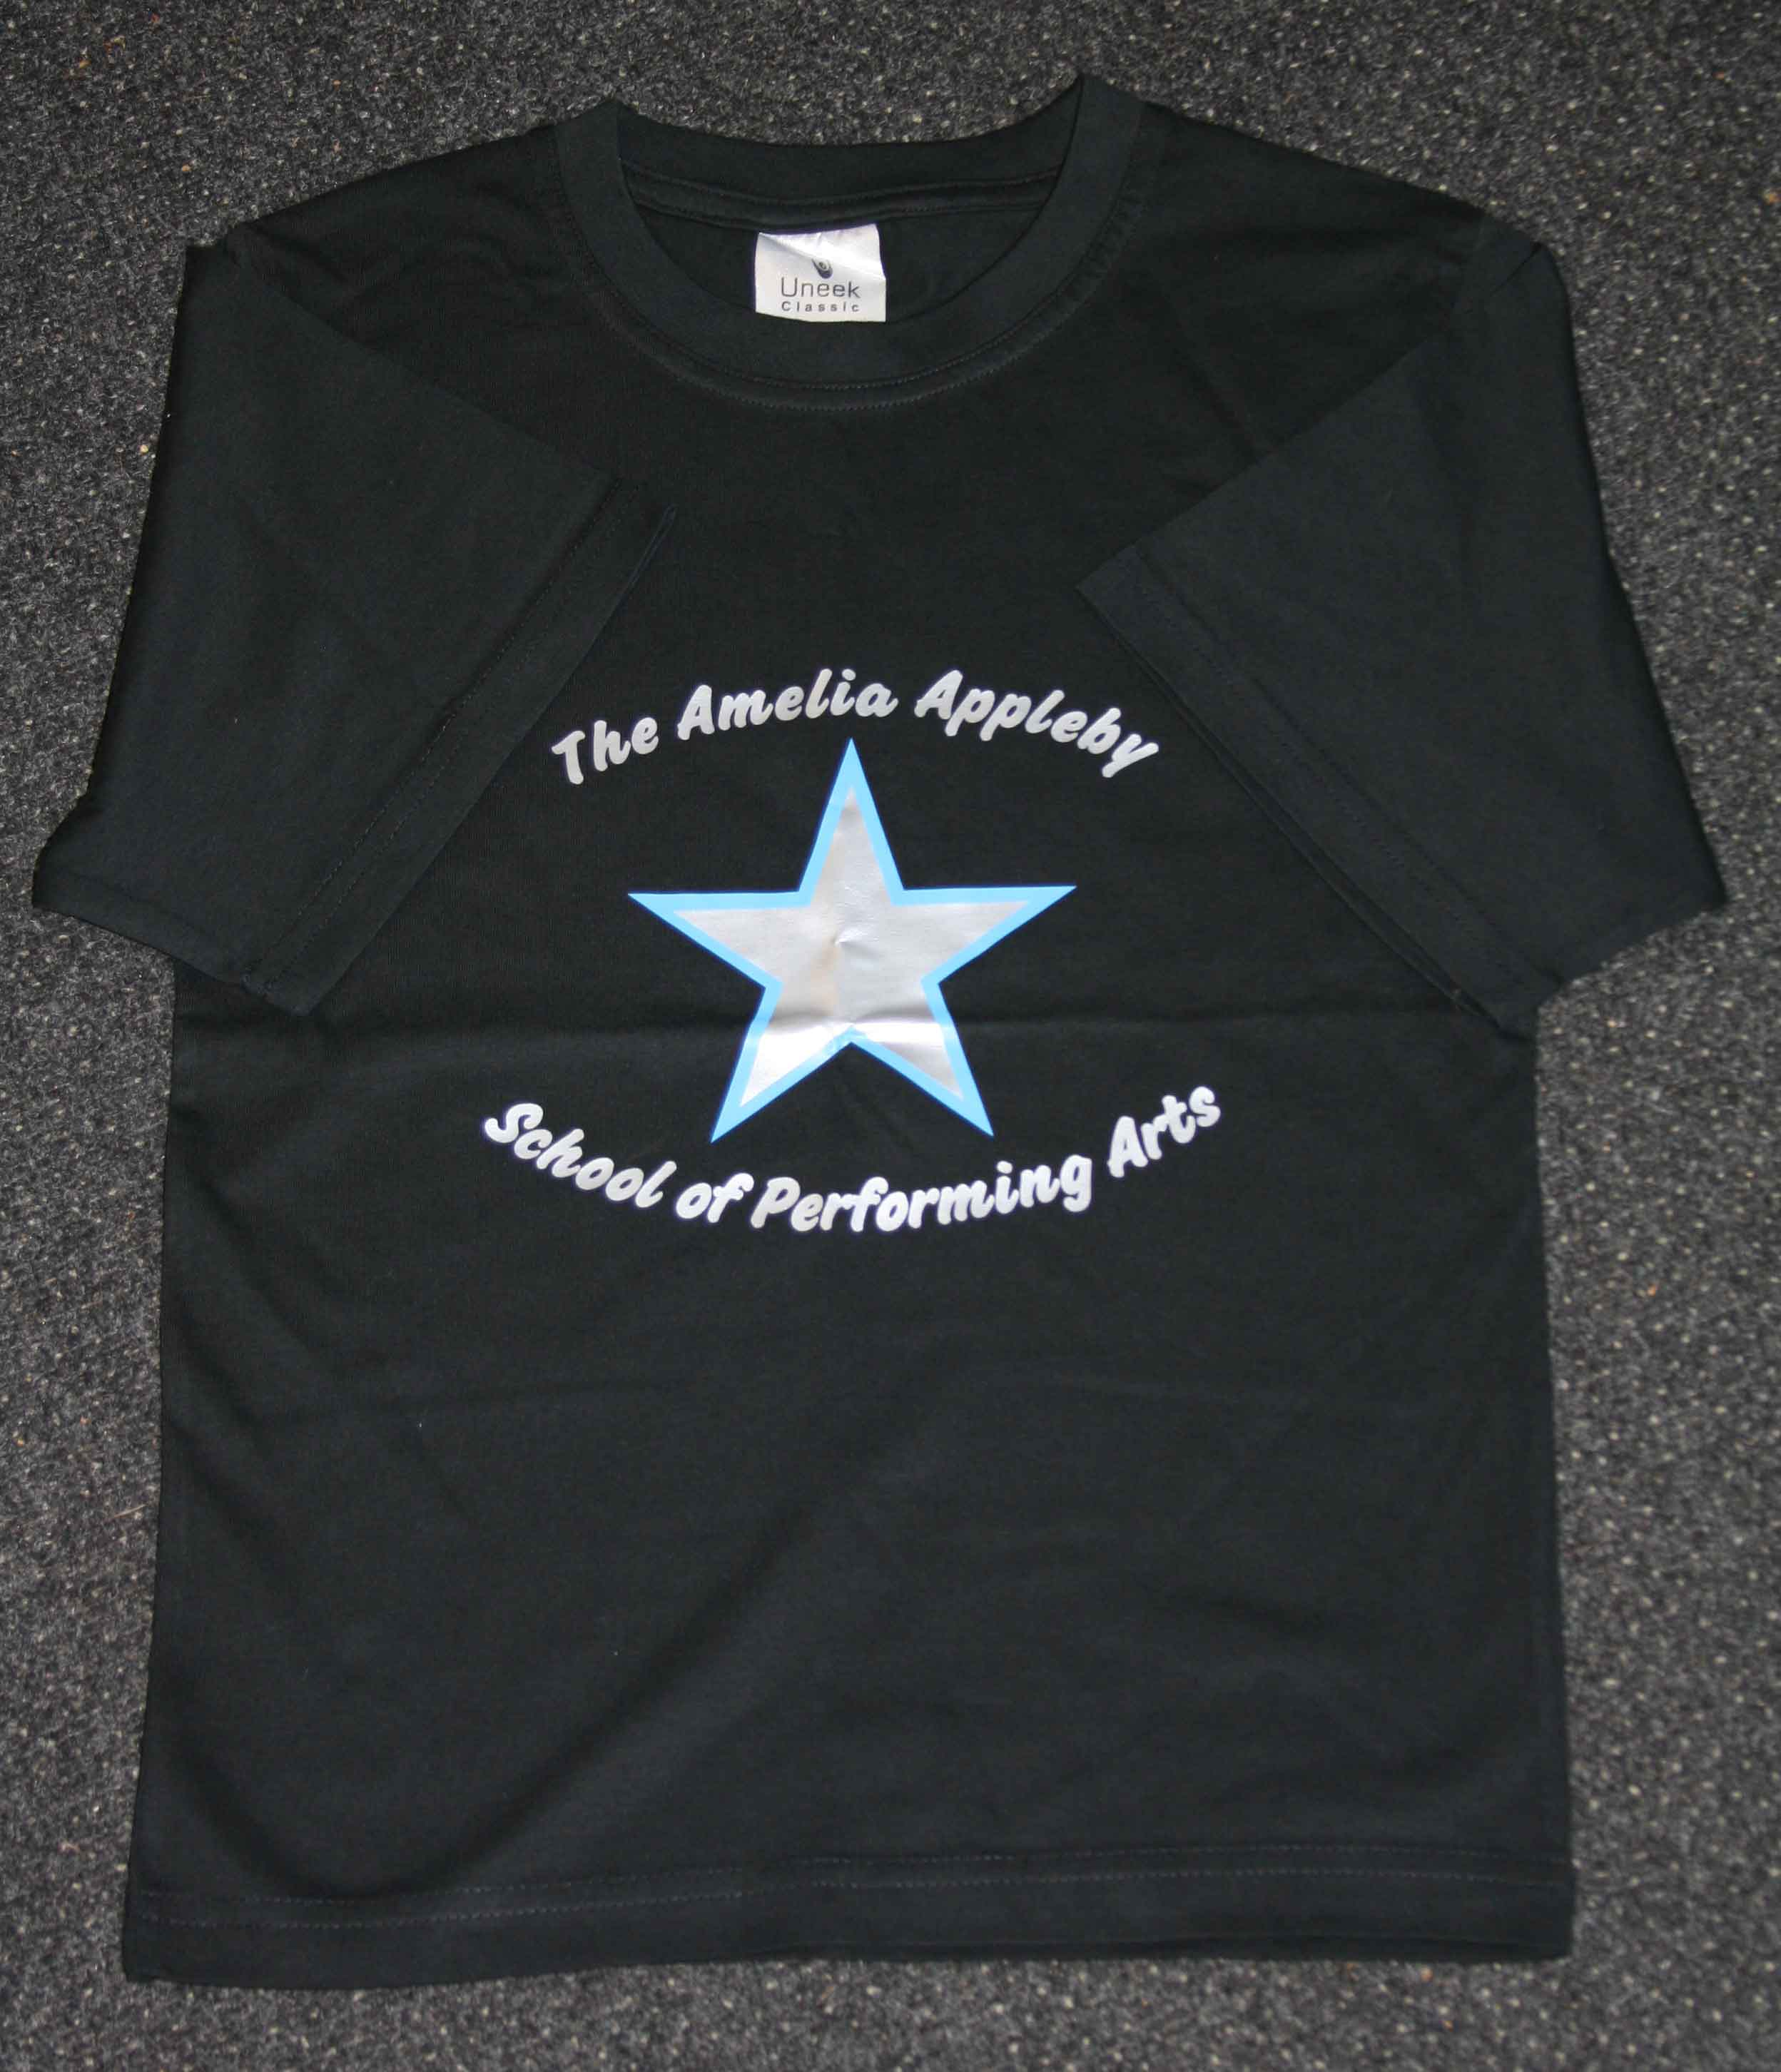 Amelia Appleby School of Performing Arts star t-shirt